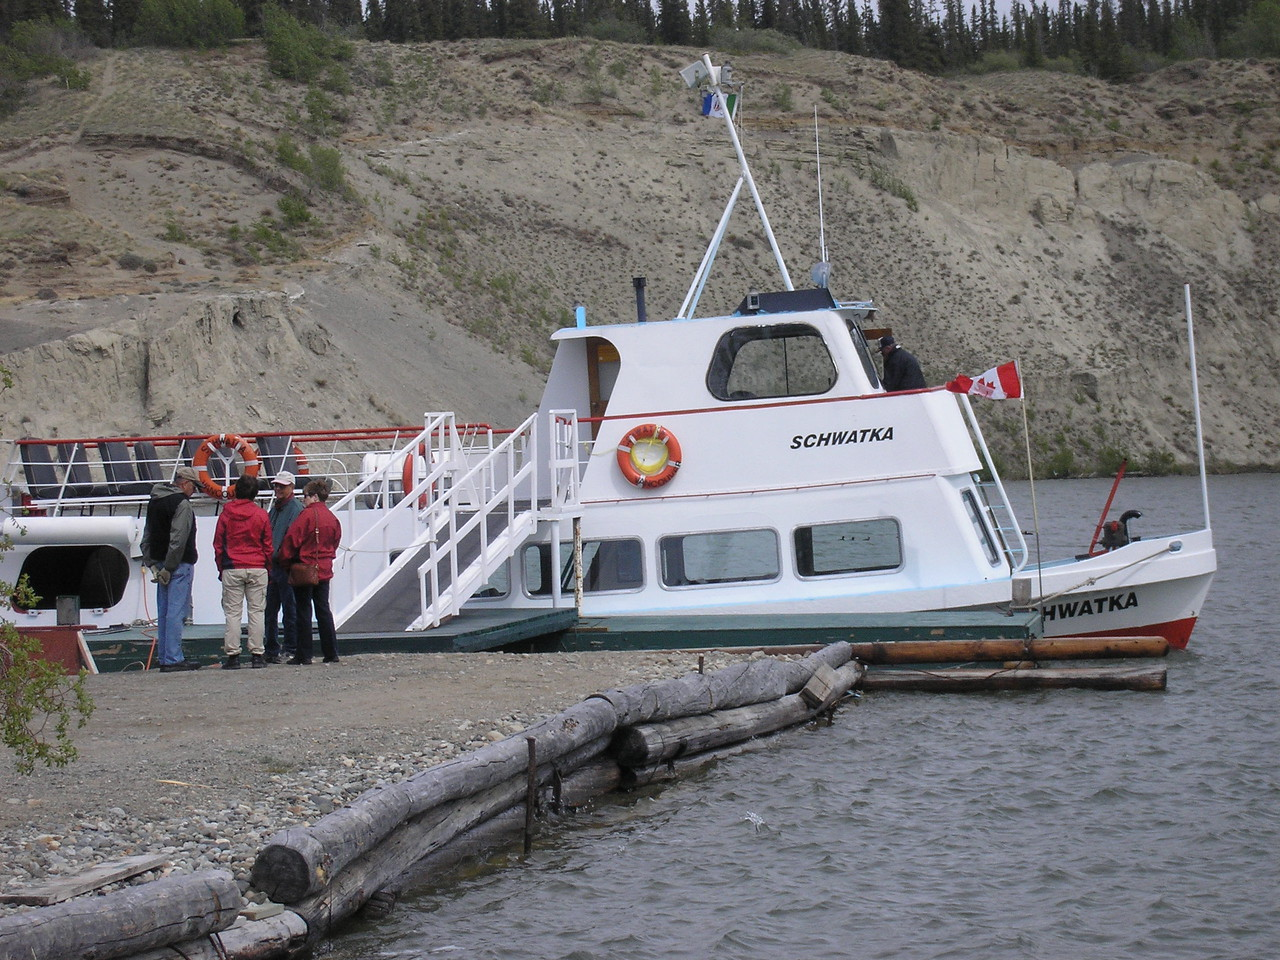 In Whitehorse, Y.T. this is our tour boat for the Yukon River tour we took.